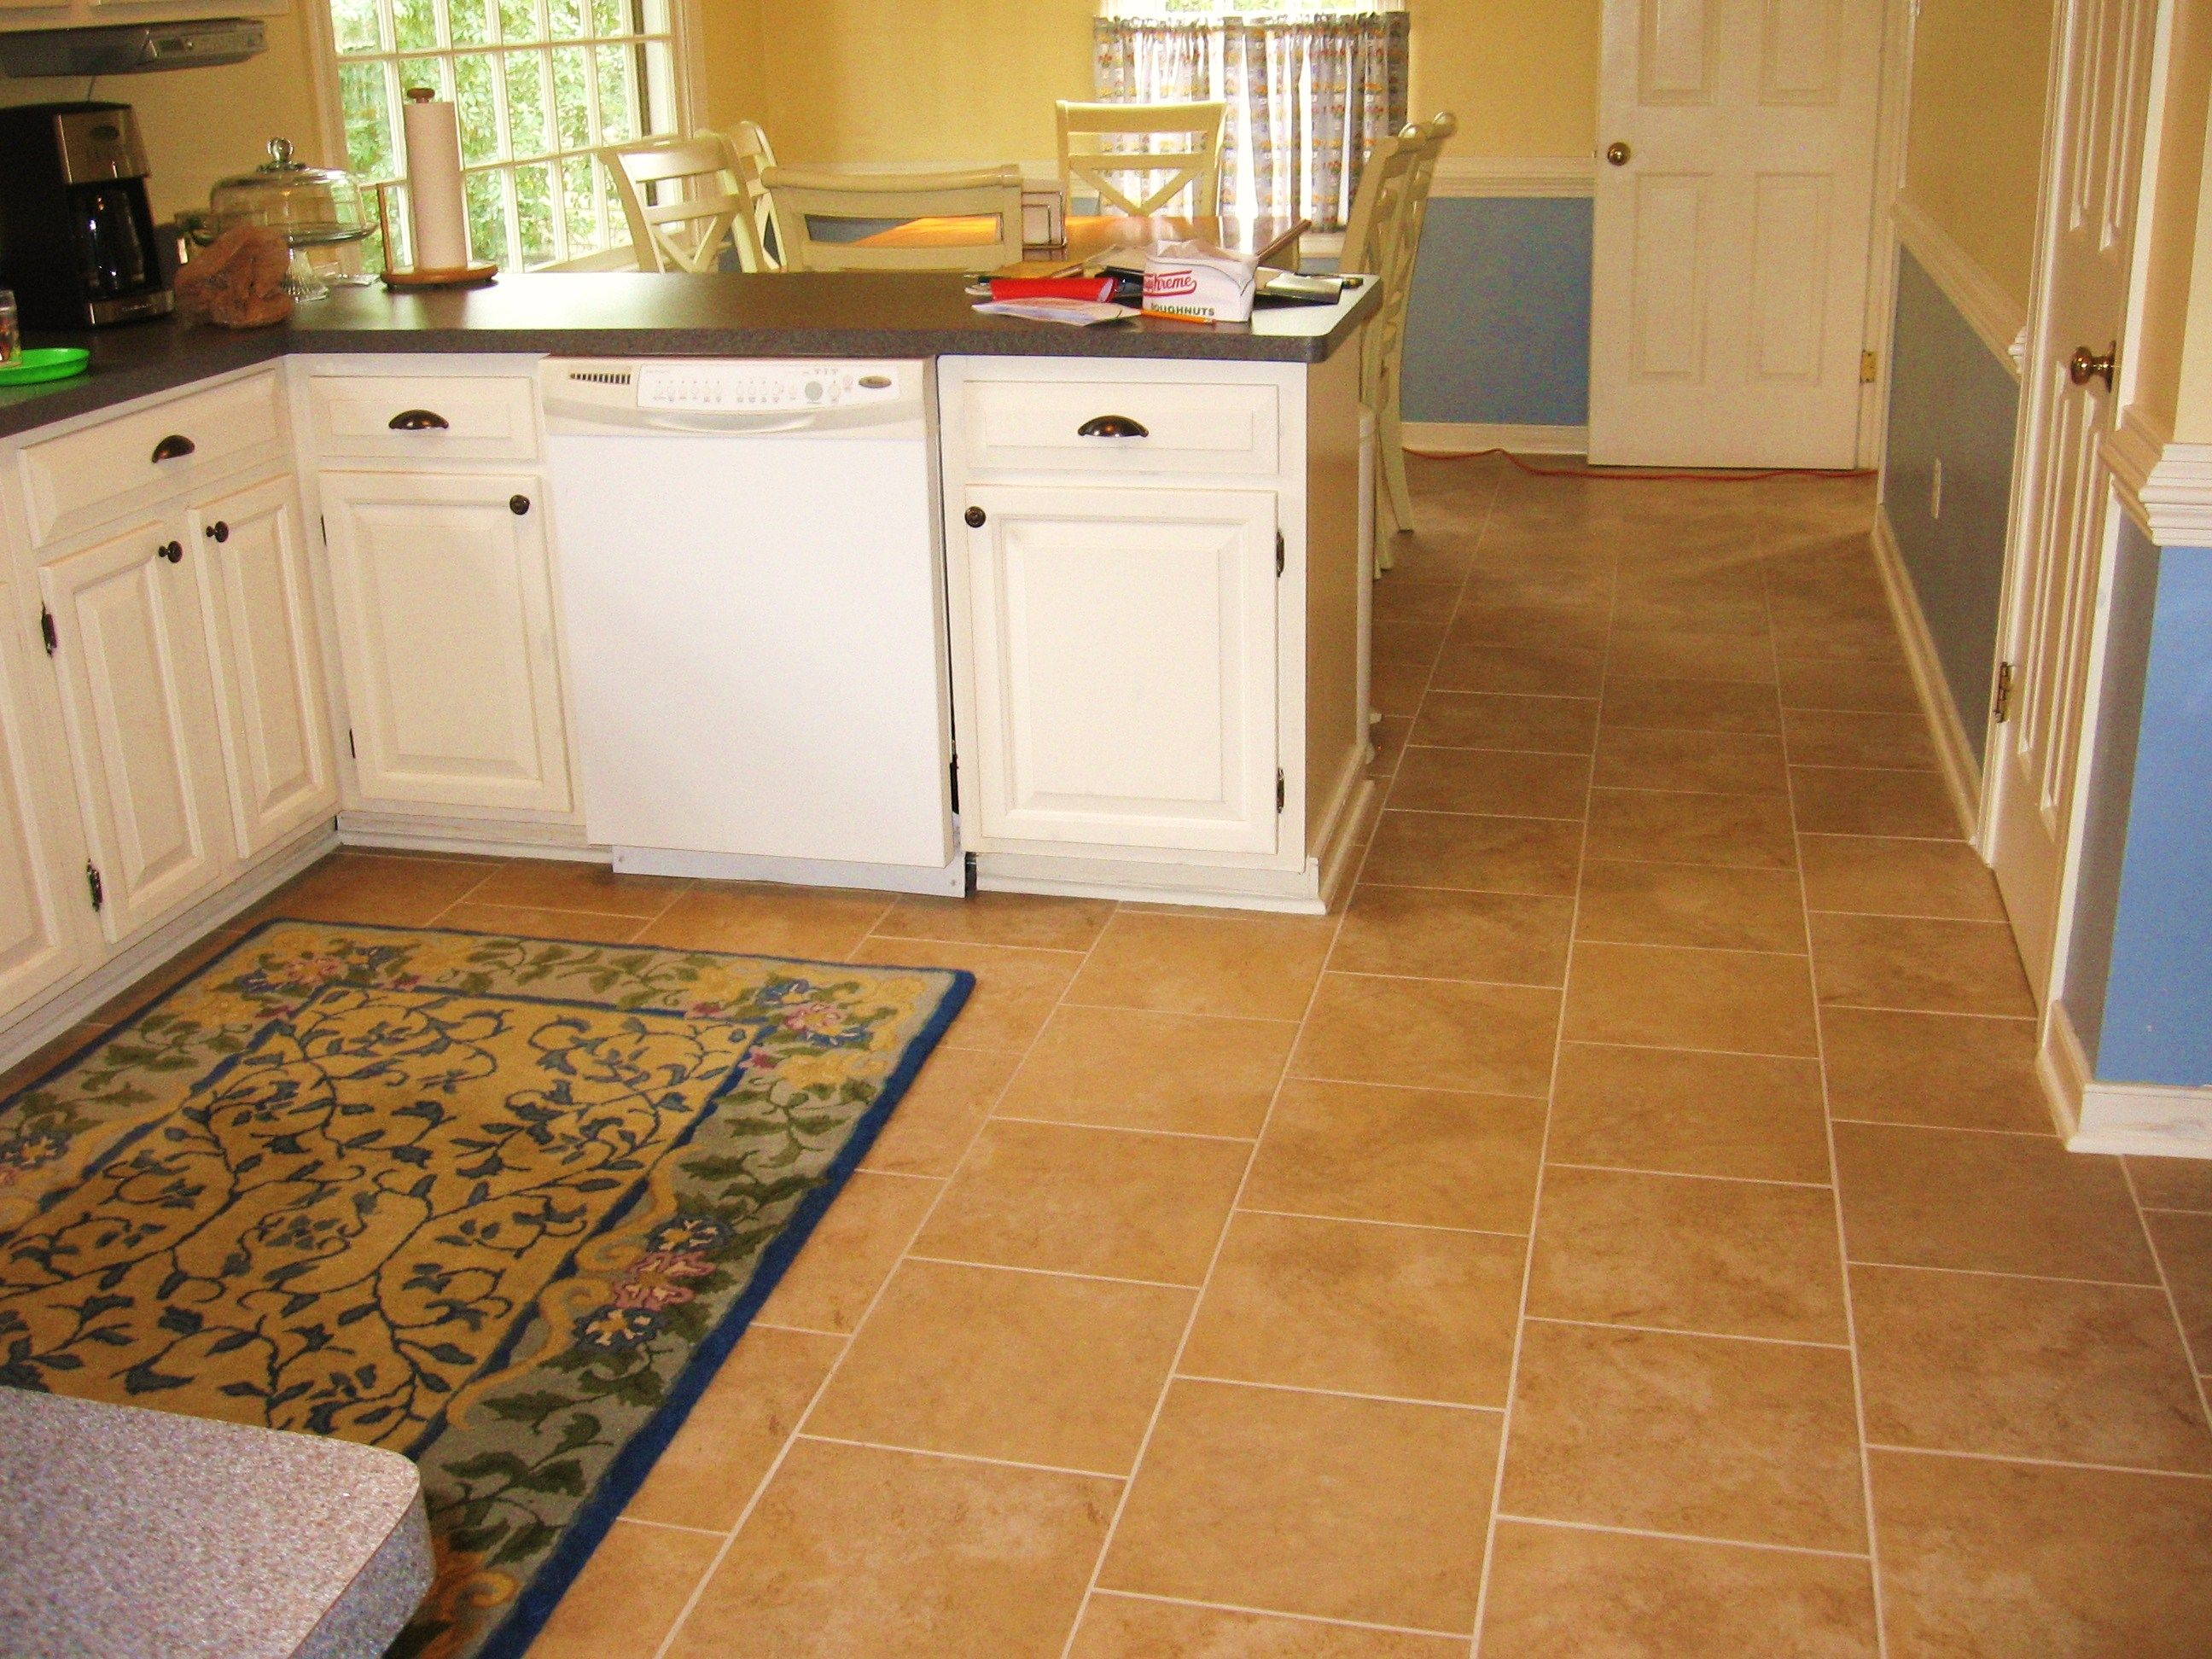 Spanish tile kitchen floor image collections tile flooring spanish tile kitchen floor httpjubizfo pinterest spanish tile kitchen floor doublecrazyfo image collections dailygadgetfo Image collections